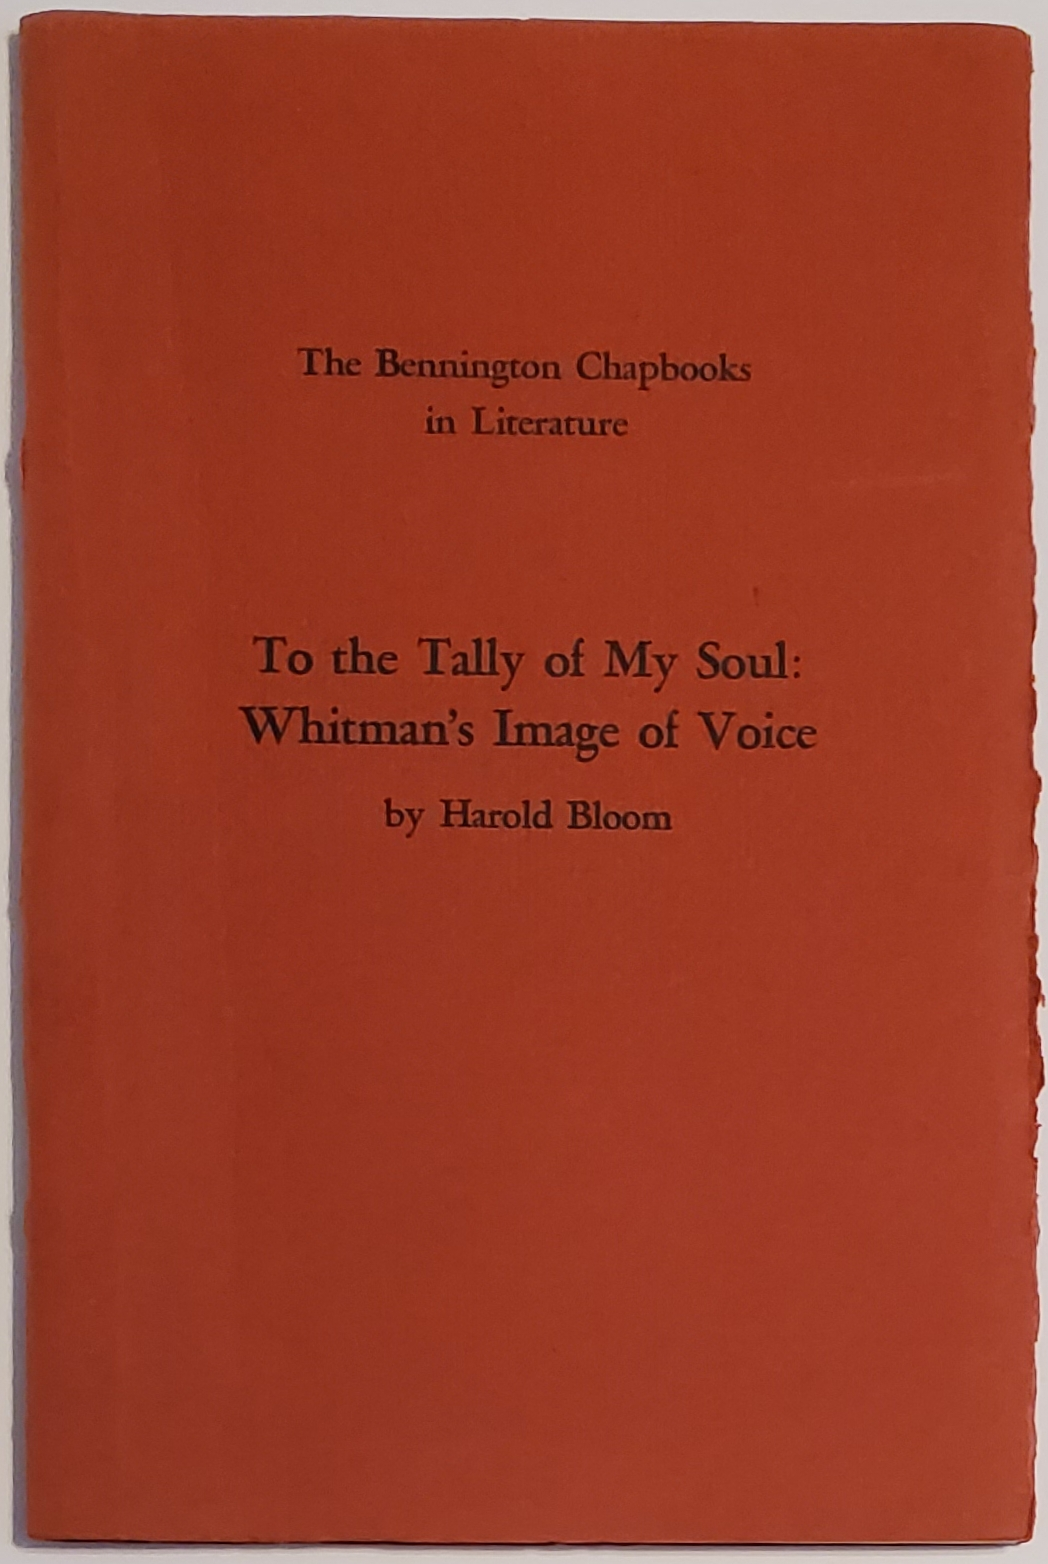 TO THE TALLY OF MY SOUL: Whitman's Image of Voice. Published in Memory of William Troy. Harold Bloom.